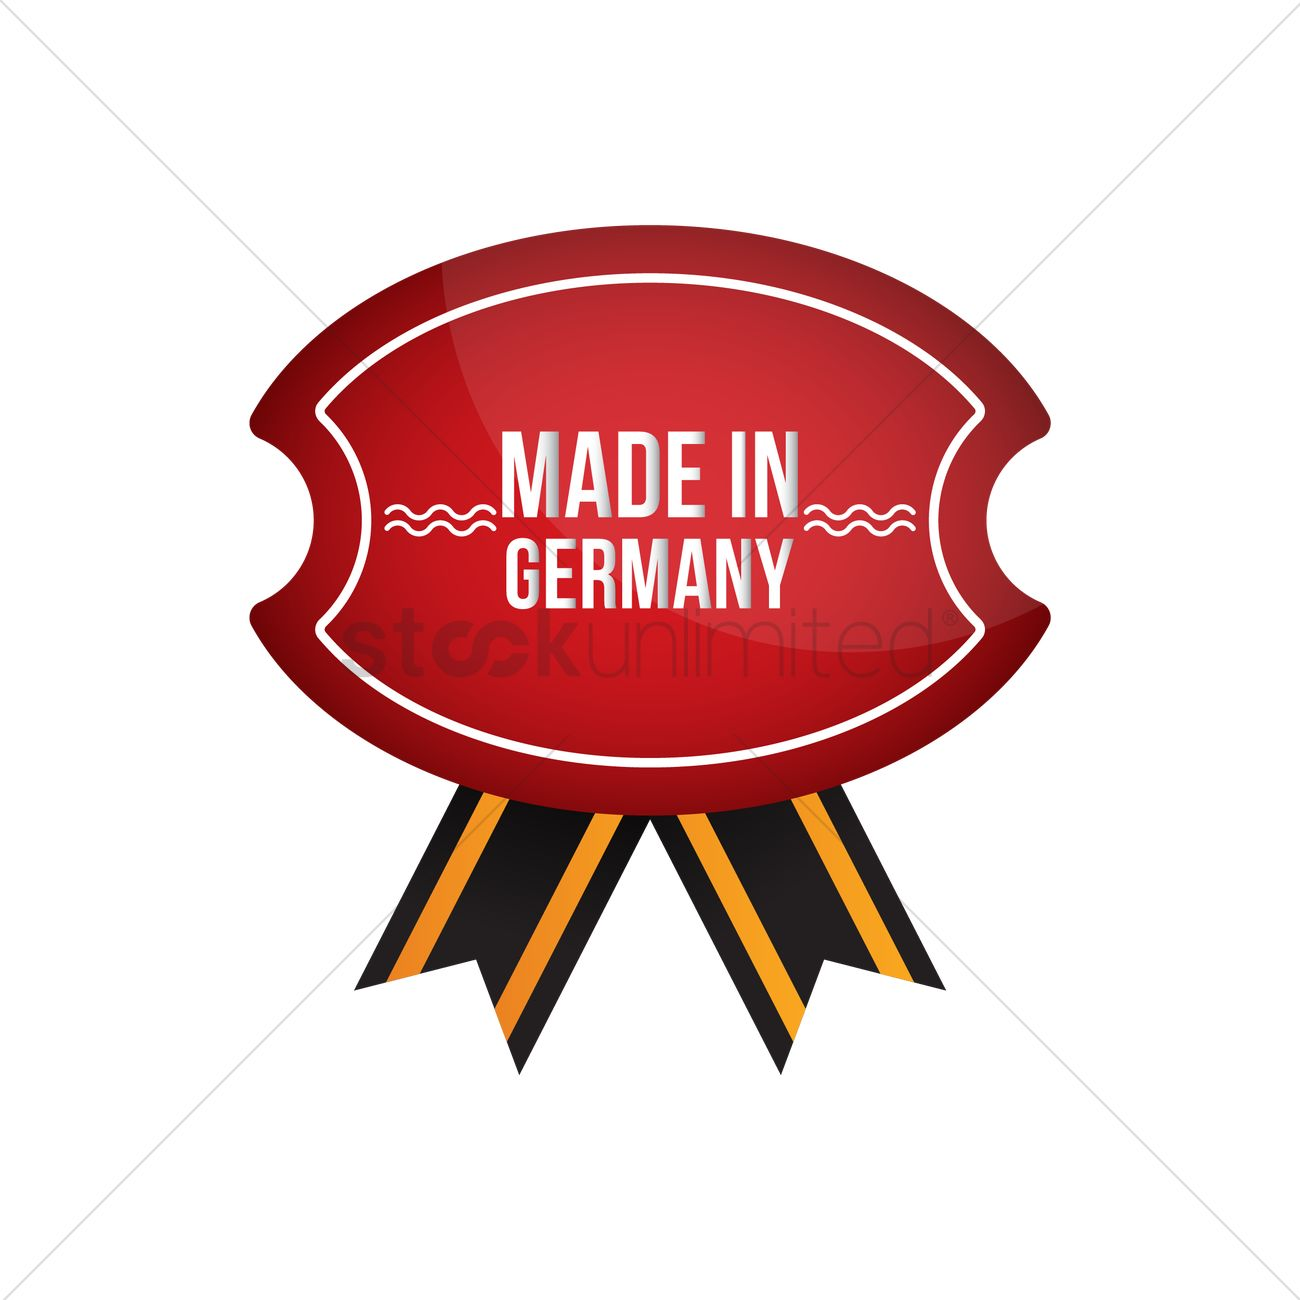 Made In Germany Ribbon Design Vector Image 1976840 Stockunlimited